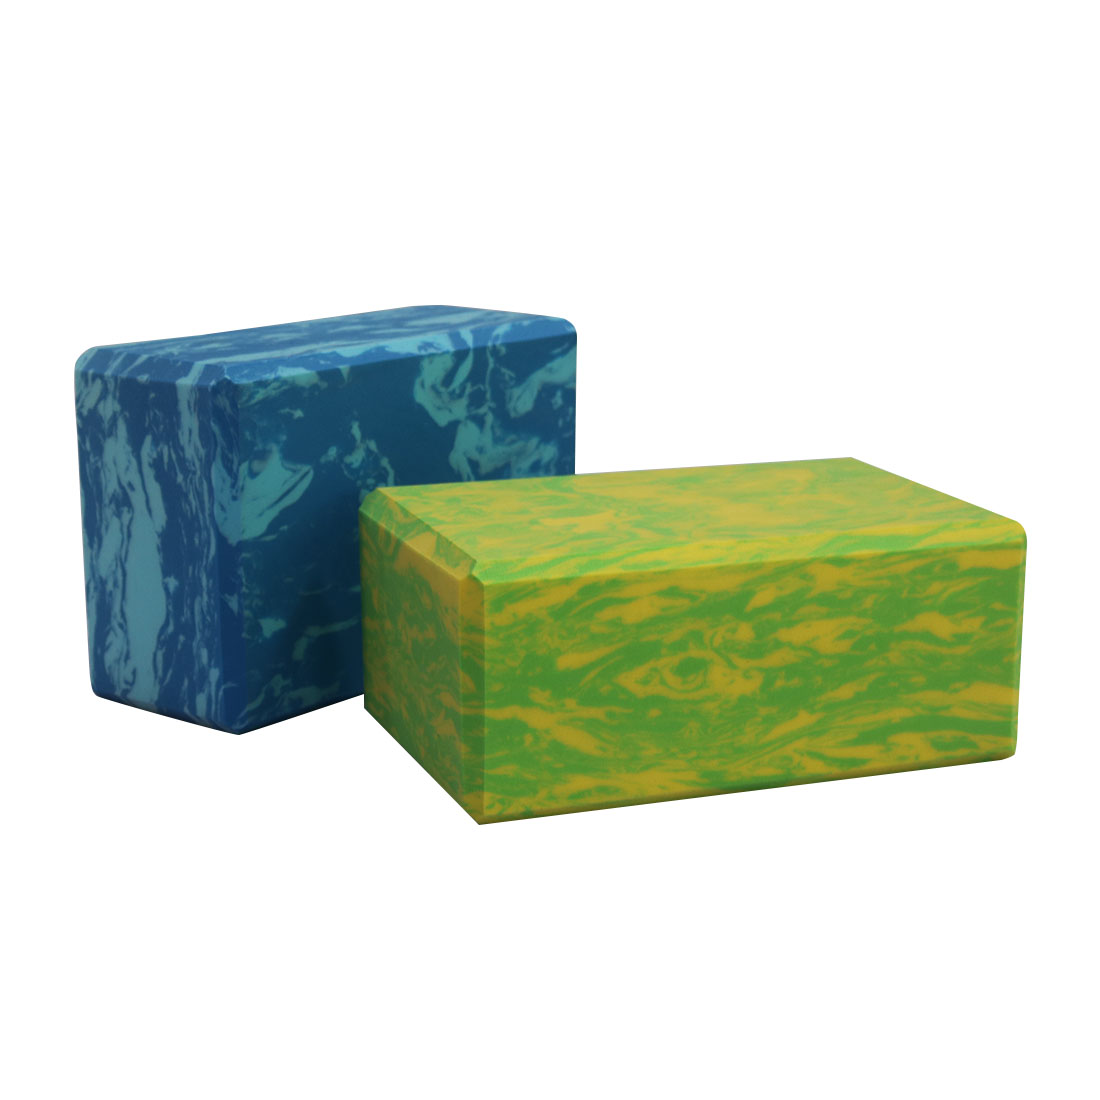 где купить 23*15*9.6 CM Camouflage EVA Yoga Blocks Brick Strength Flexibility Pilates Yoga Block gym exercise fitness equipment дешево